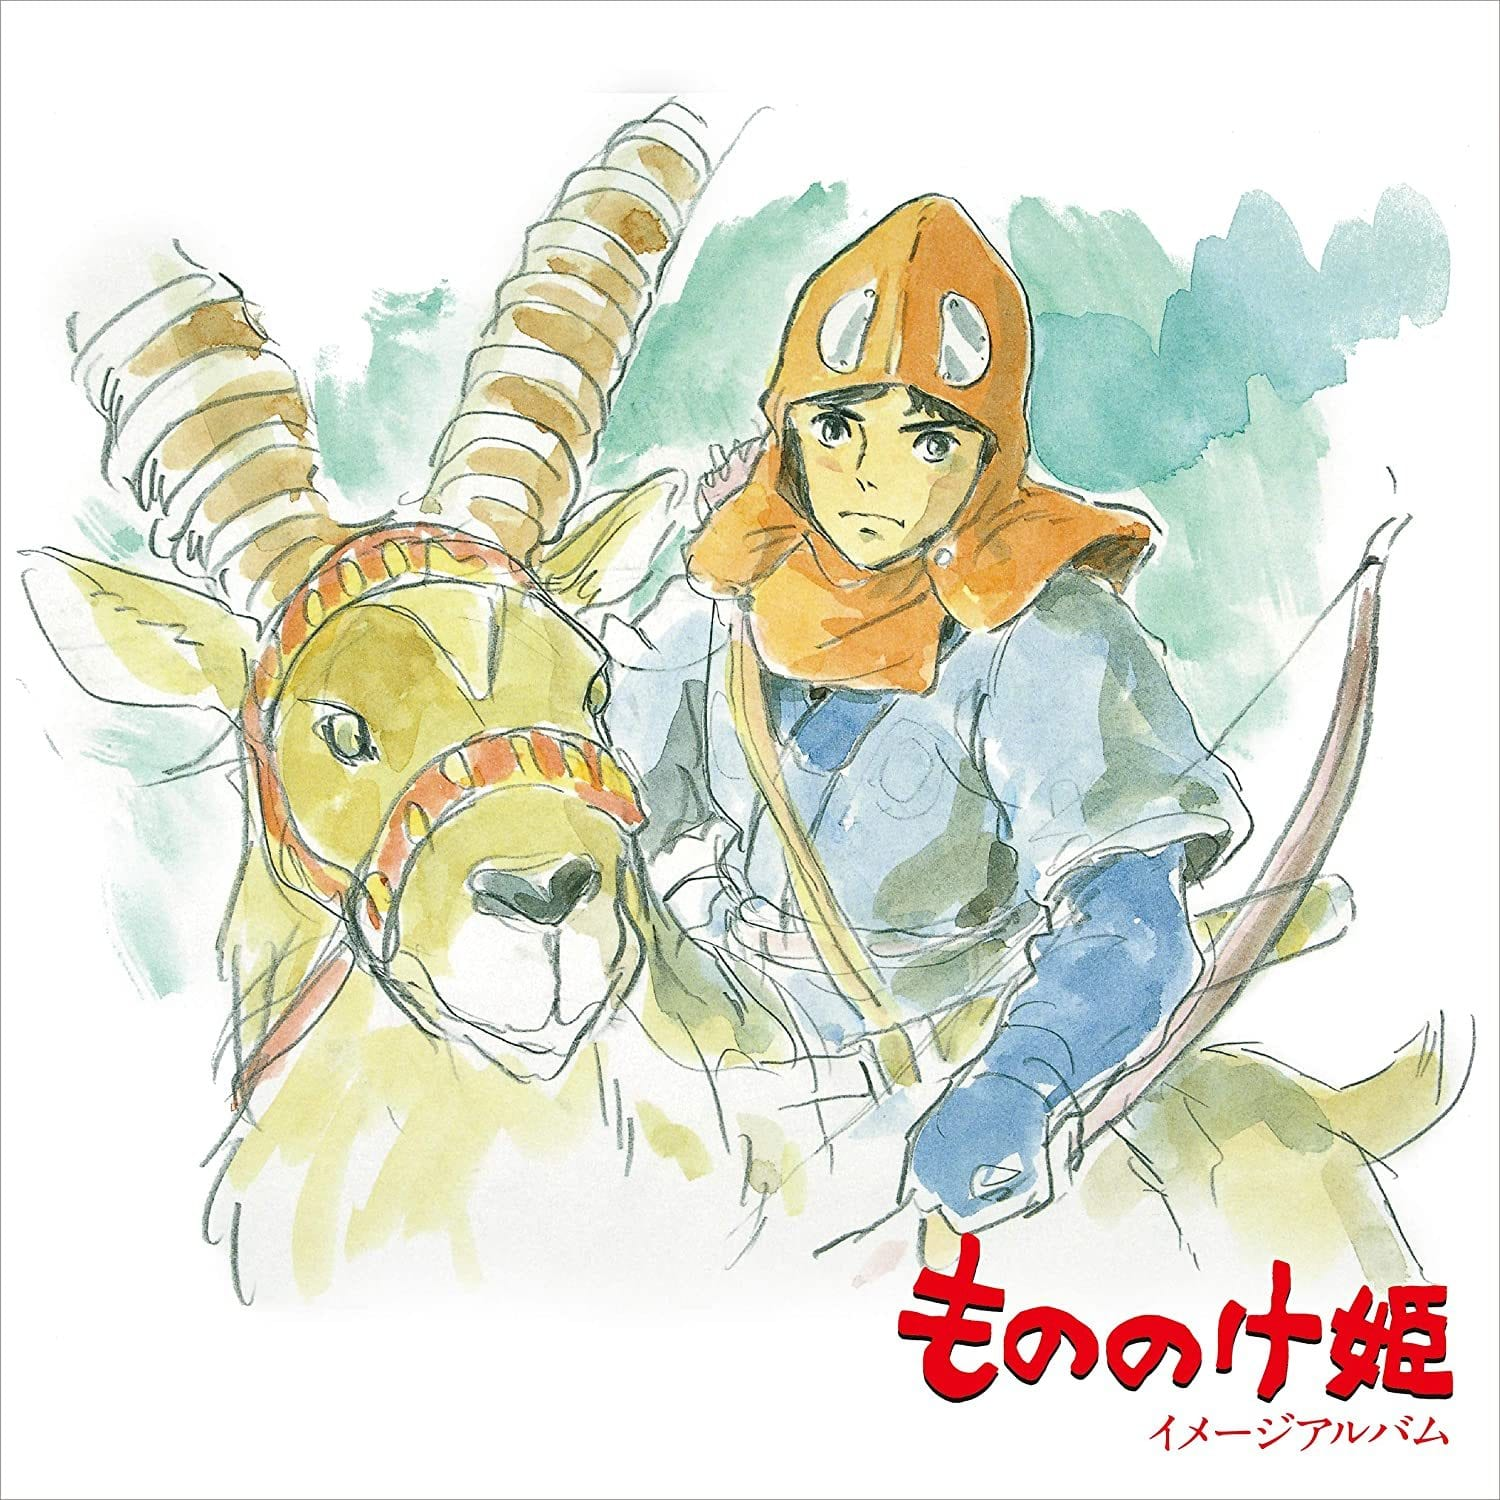 Joe Hisaishi - Princess Mononoke: Image Album [LP] (first time in vinyl, remastered, Japanese import, OBI strip, limited) - Urban Vinyl | Records, Headphones, and more.